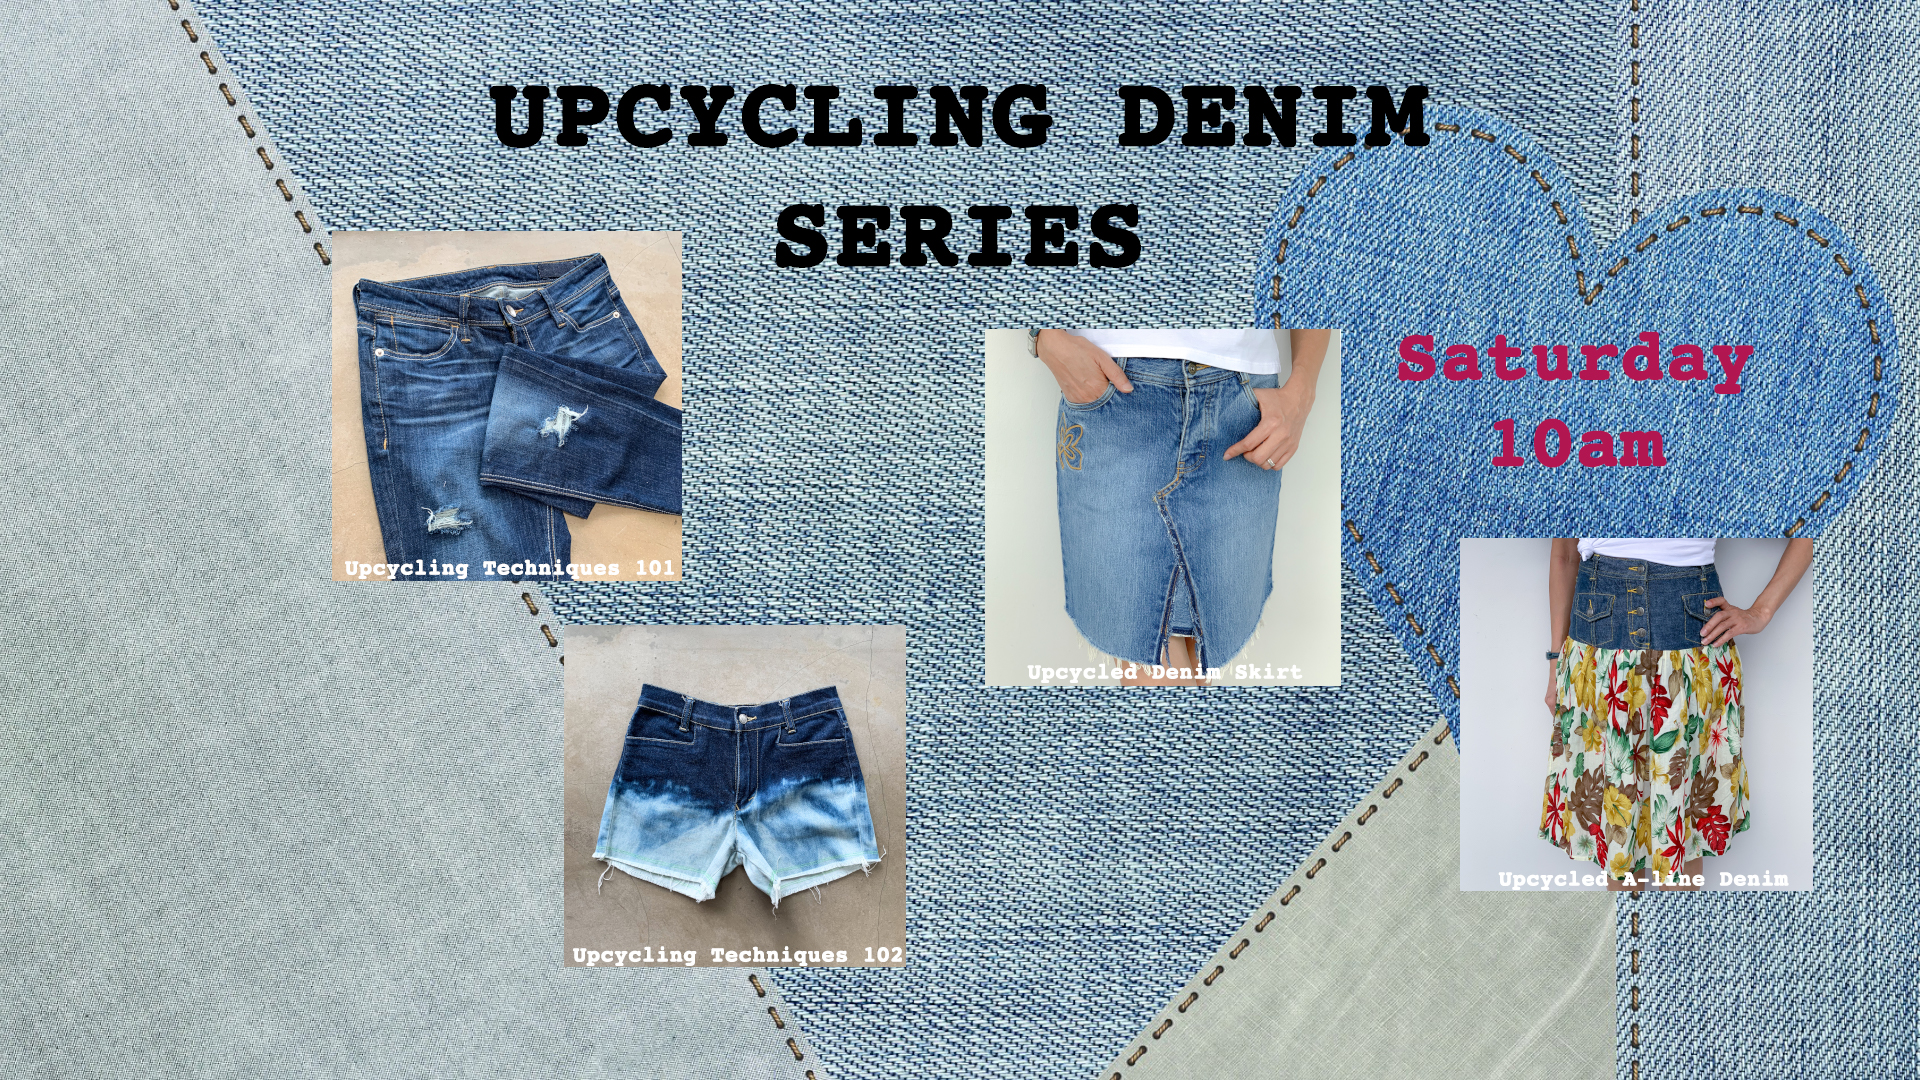 Upcycling Denim Series